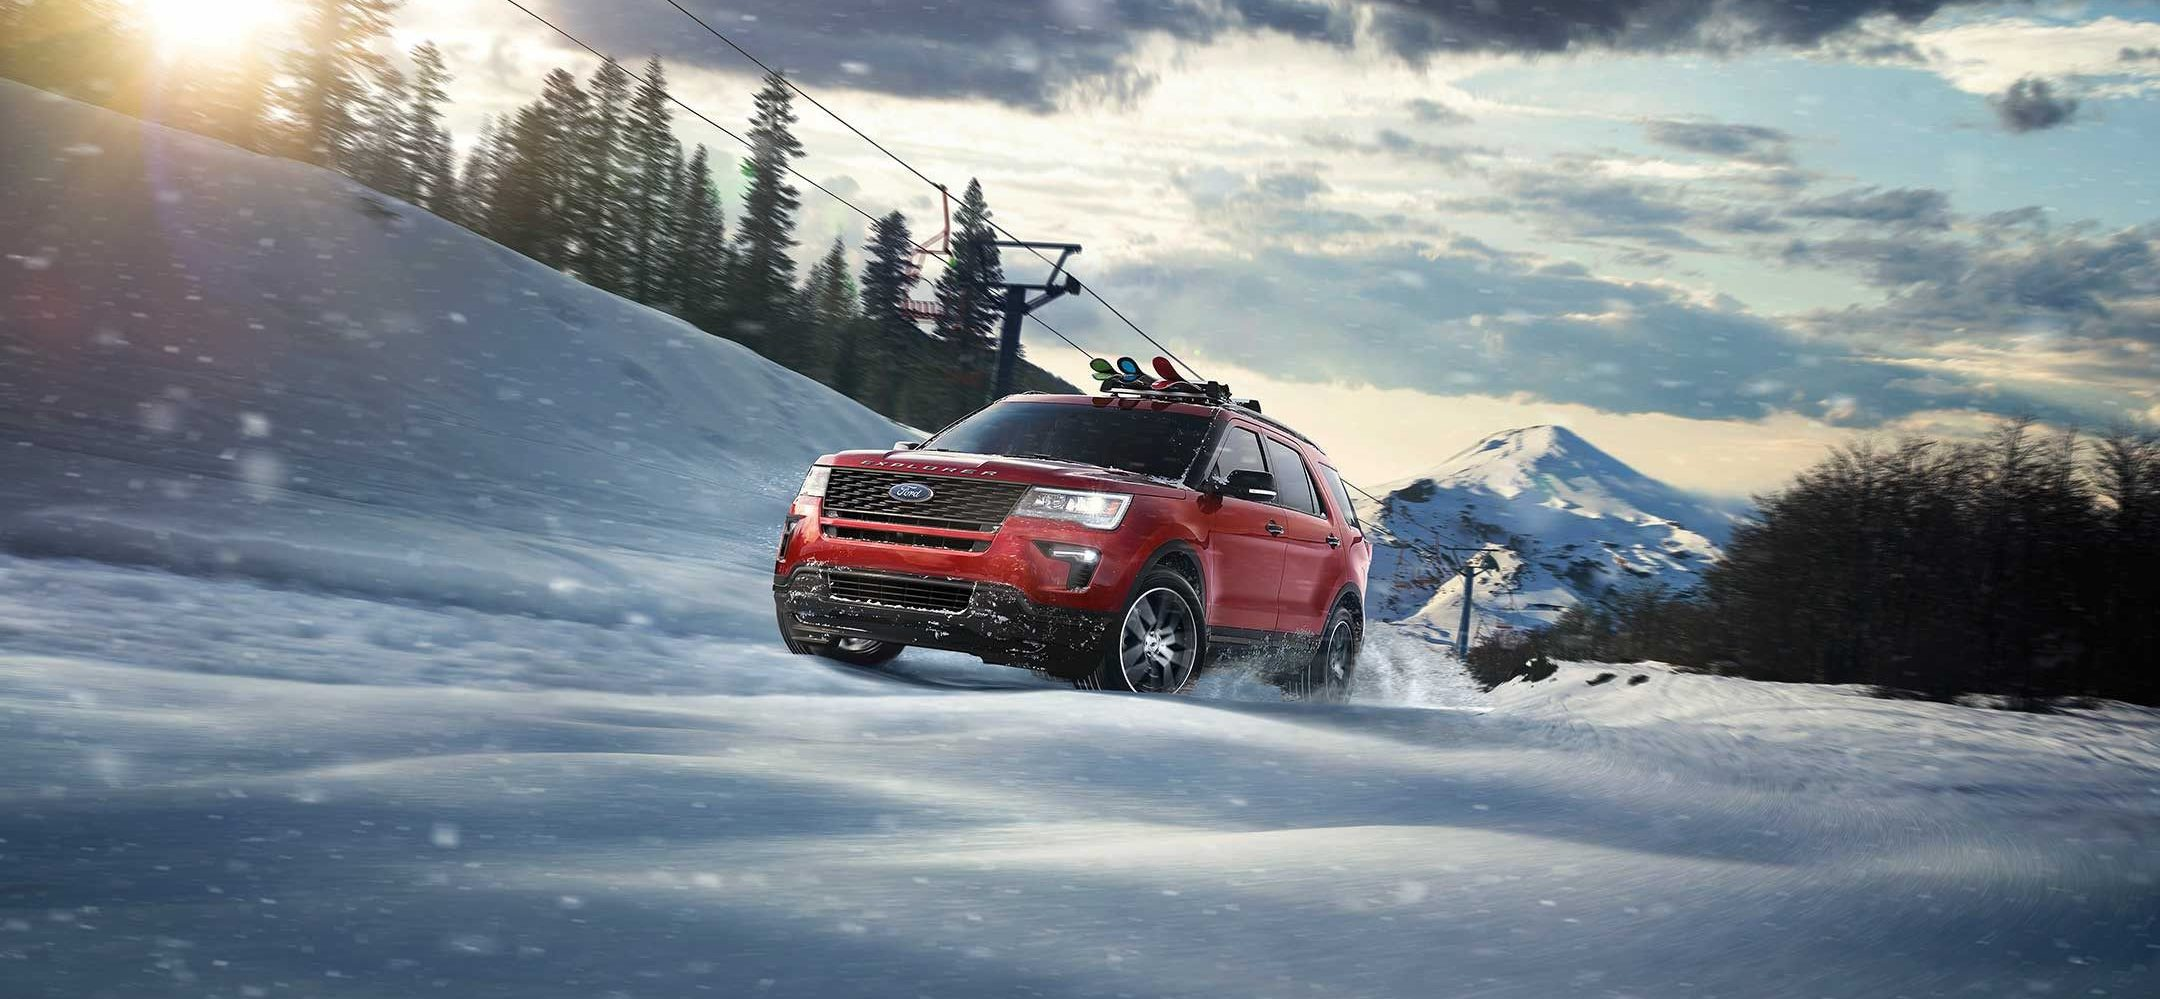 2019 ford explorer in red, driving through snow with roof rack